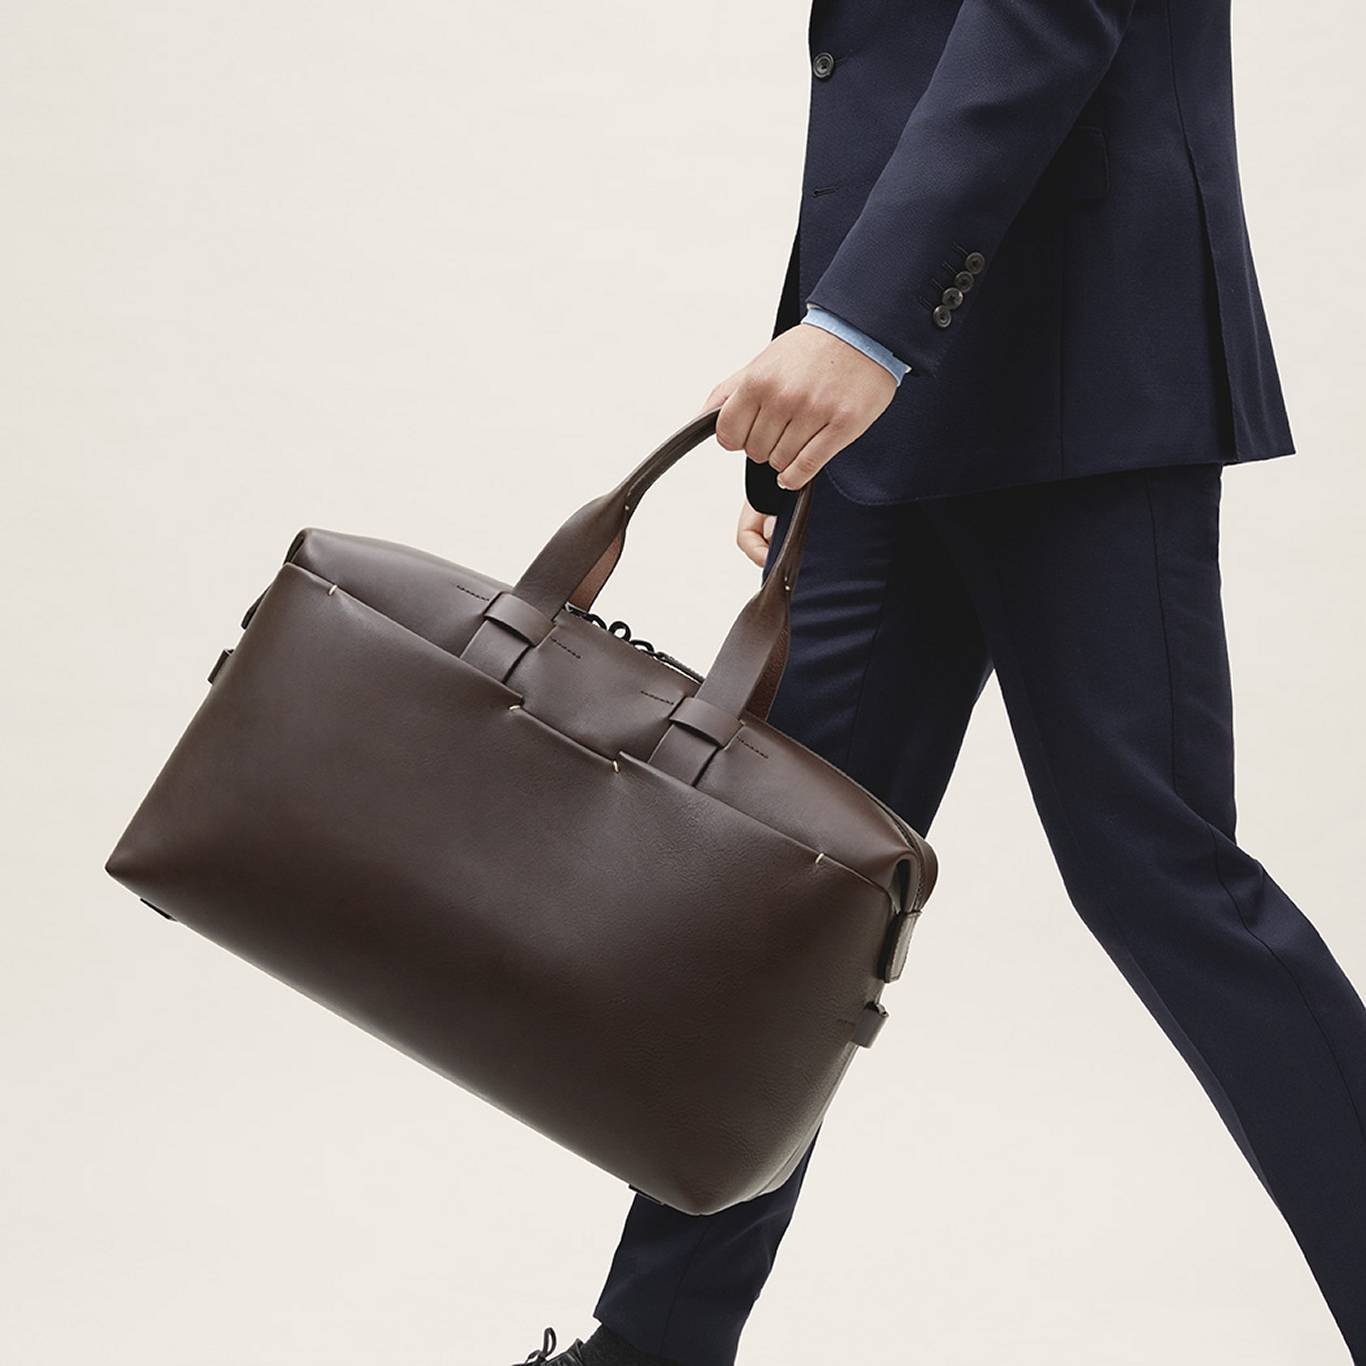 Man with navy blue suit carrying Troubadour's brown leather weekend bag